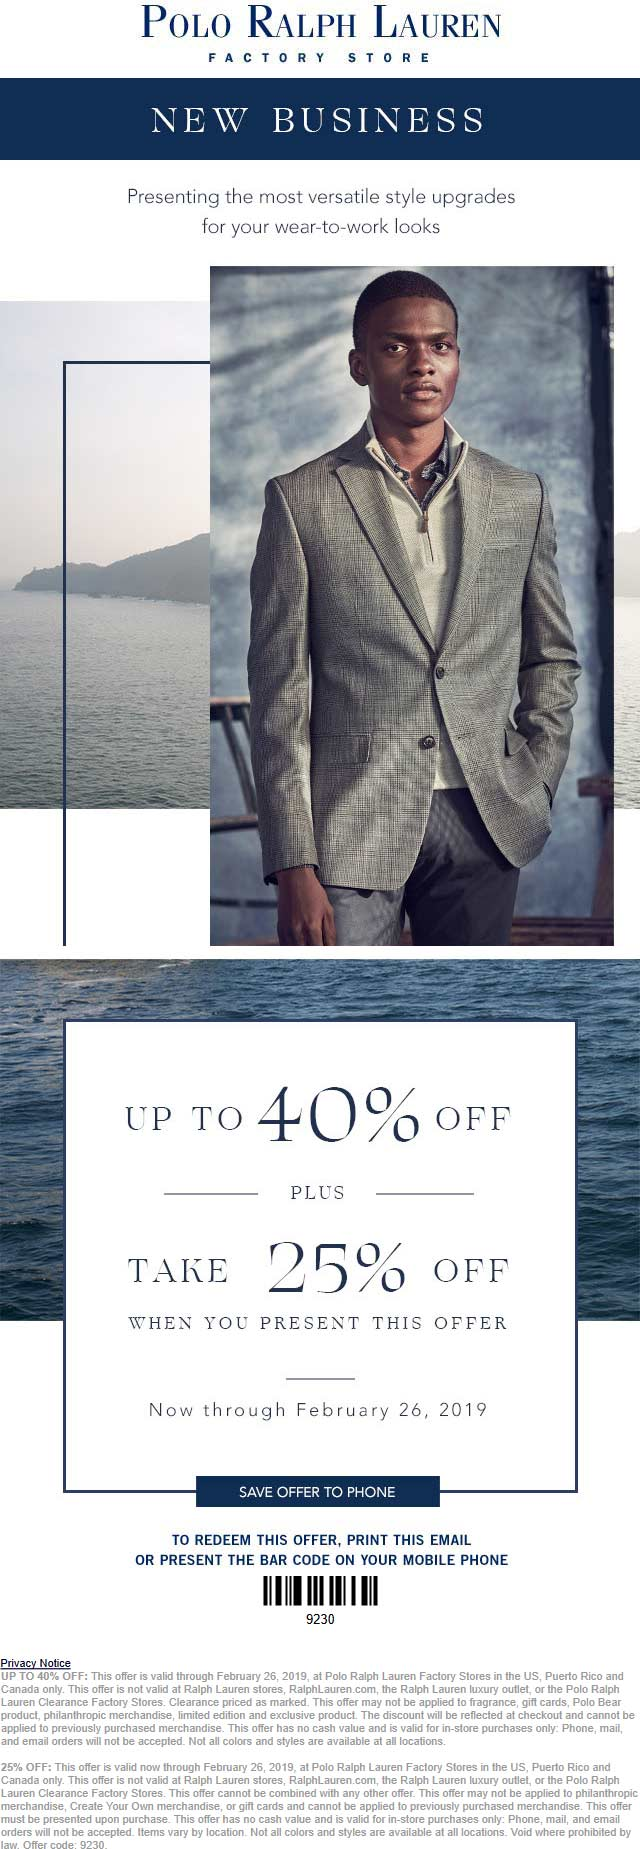 Ralph Lauren Coupon August 2020 25% off at Polo Ralph Lauren & Factory locations